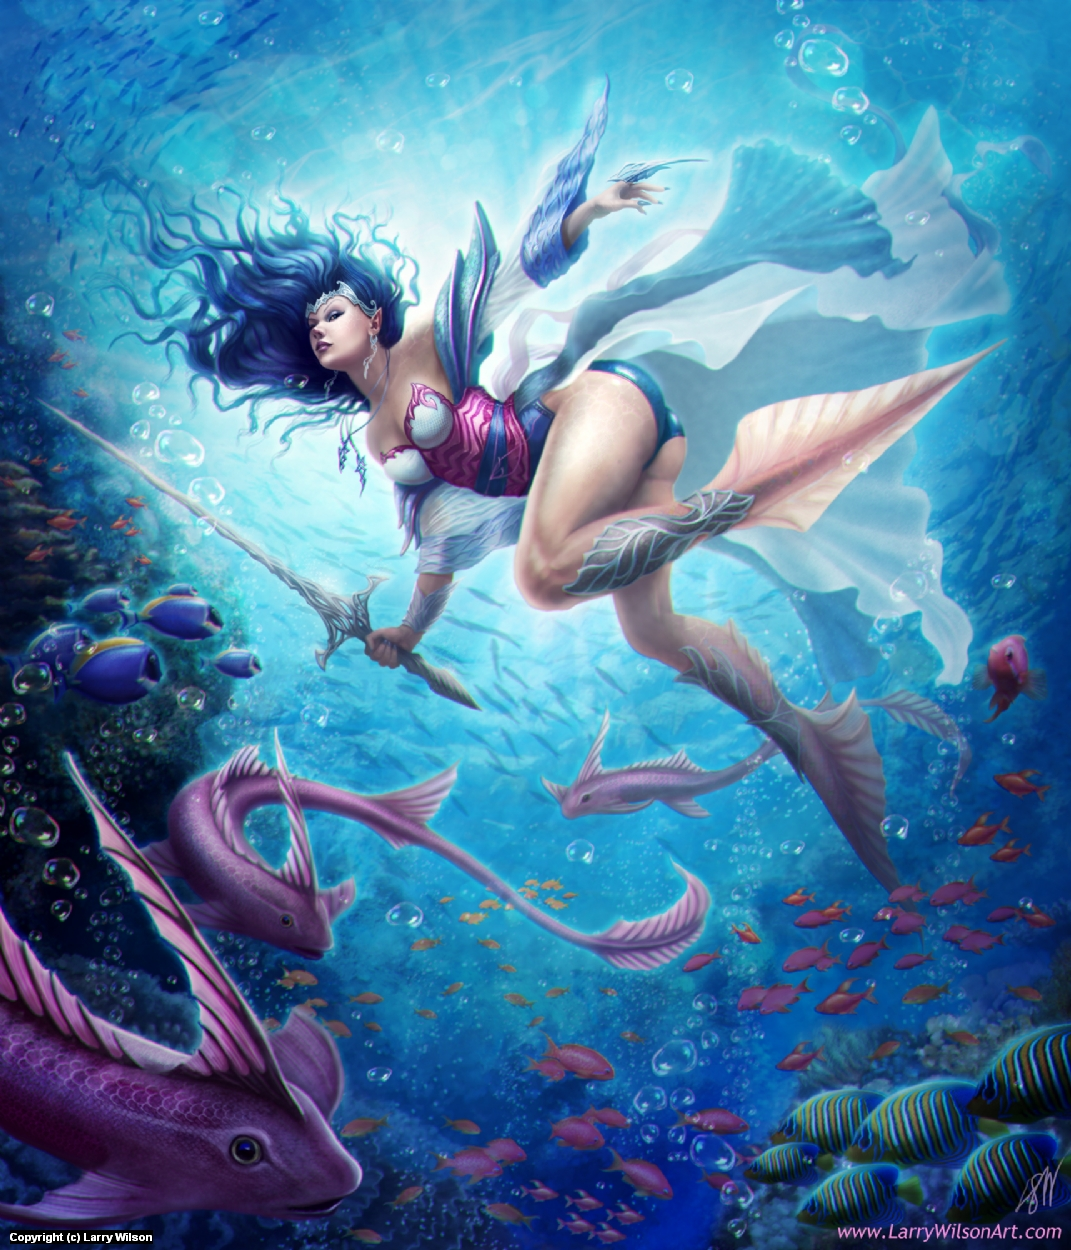 The Enchanted Depths Artwork by Larry wilson